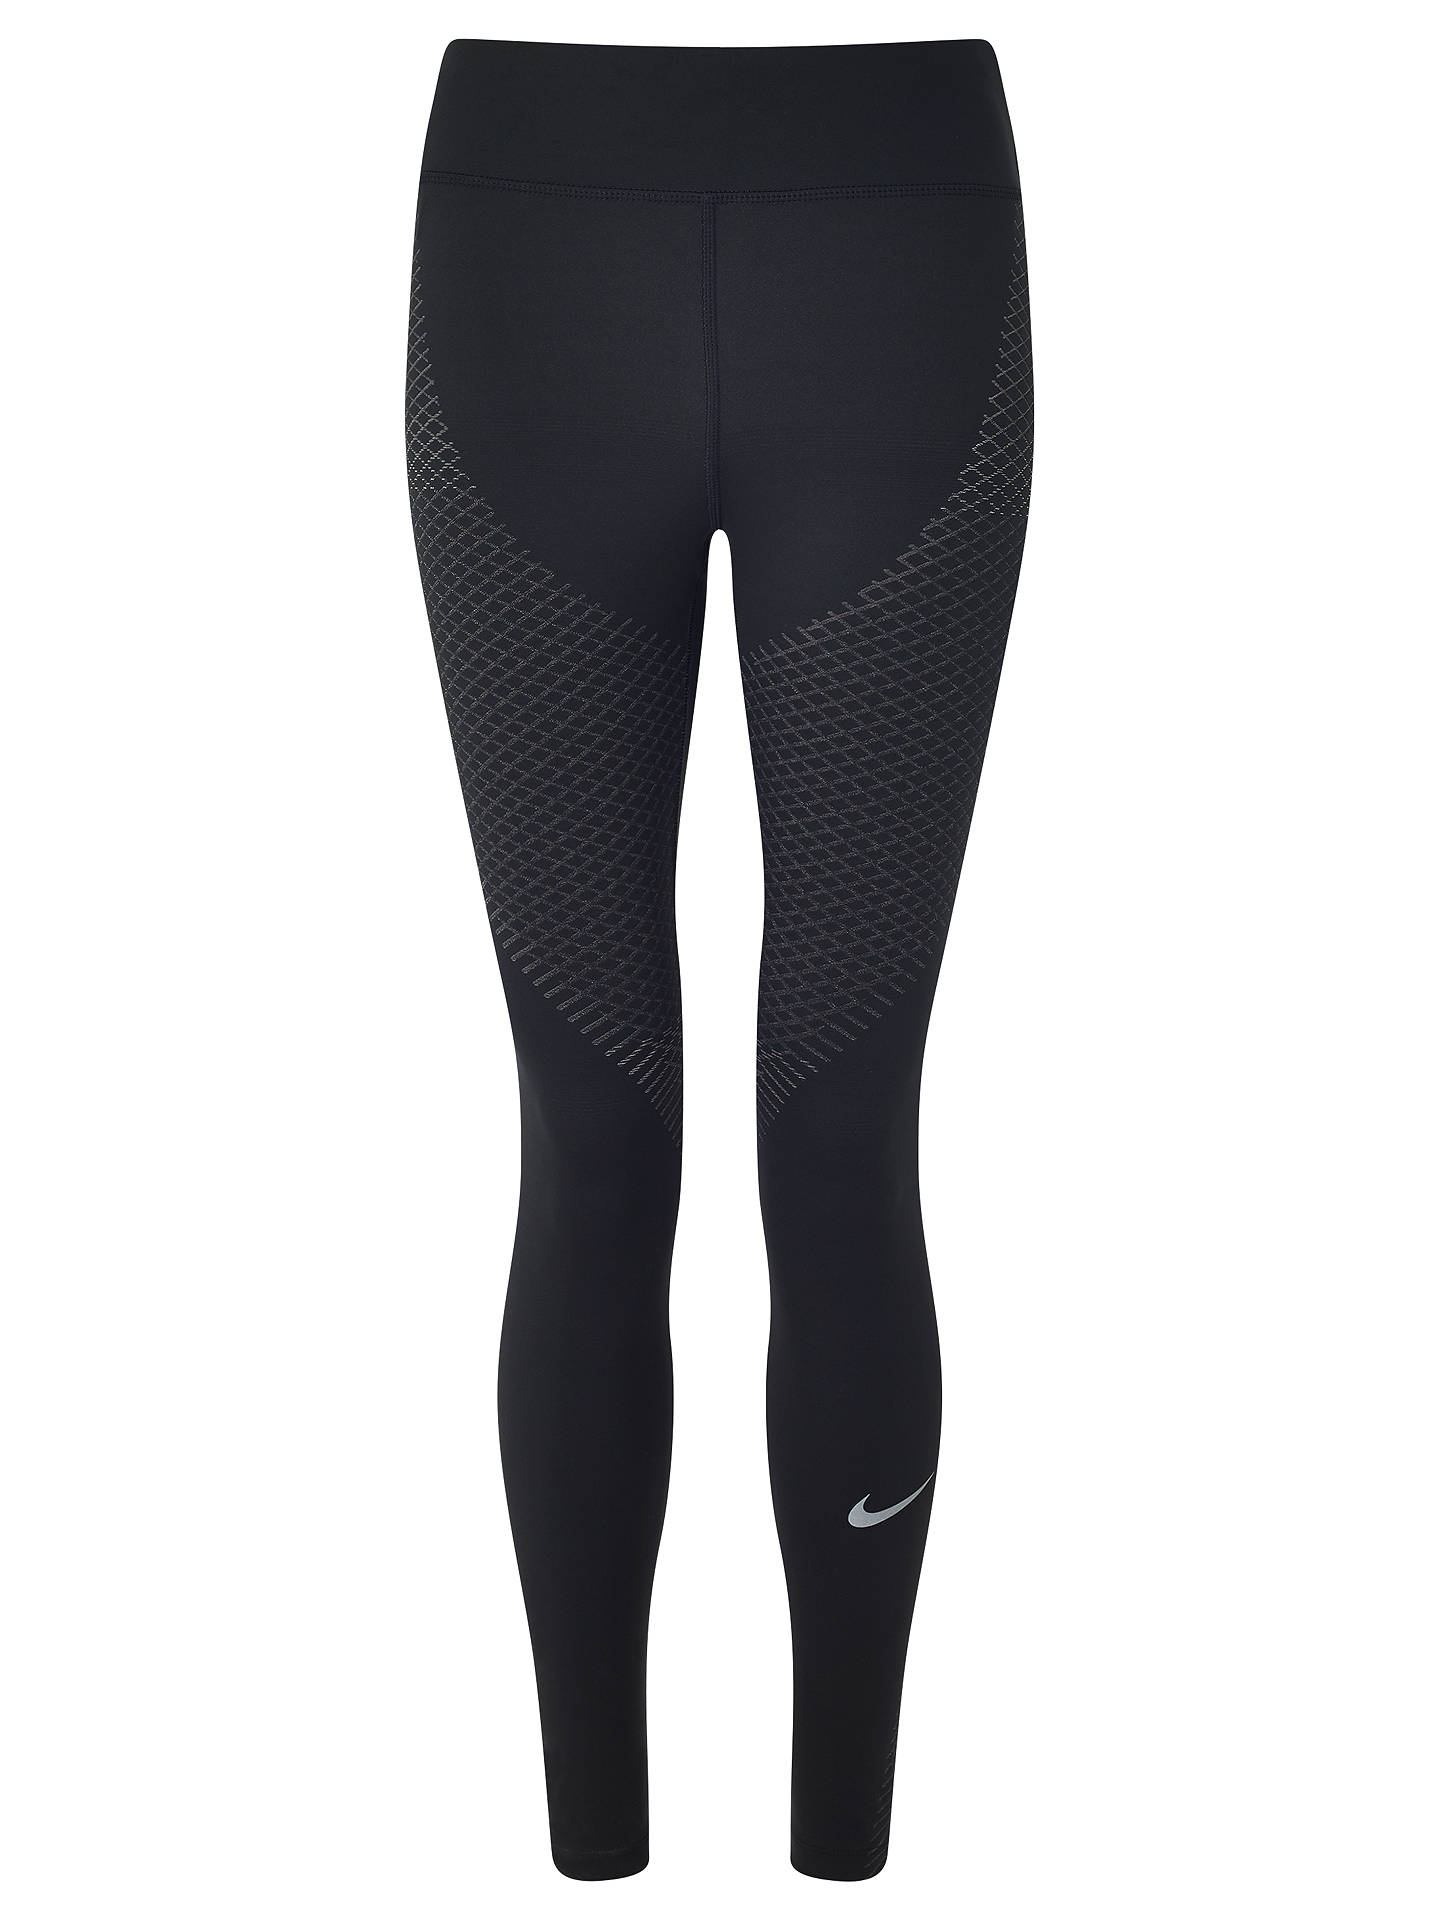 75bb7593495e3 Buy Nike Zonal Strength Print Running Tights, Black, XS Online at  johnlewis.com